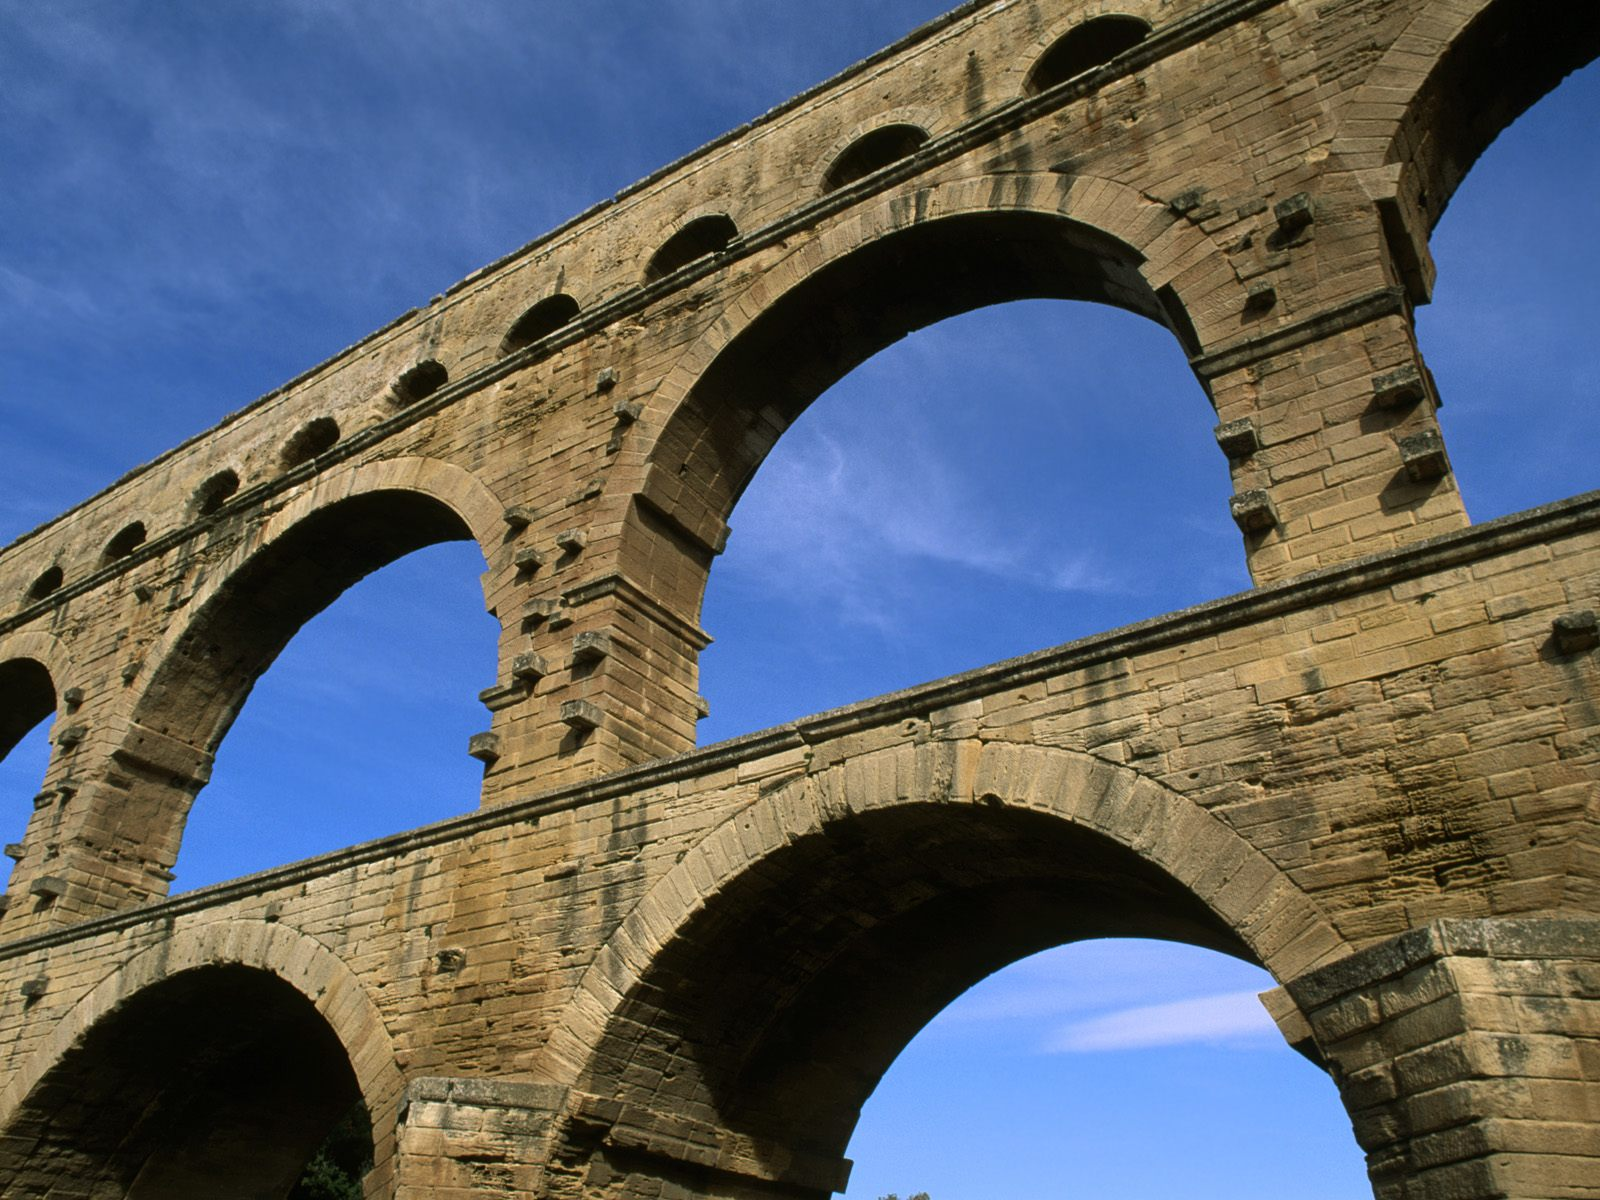 Roman aqueducts exhibit at cinecitt due younginrome for Pont du gard architecte